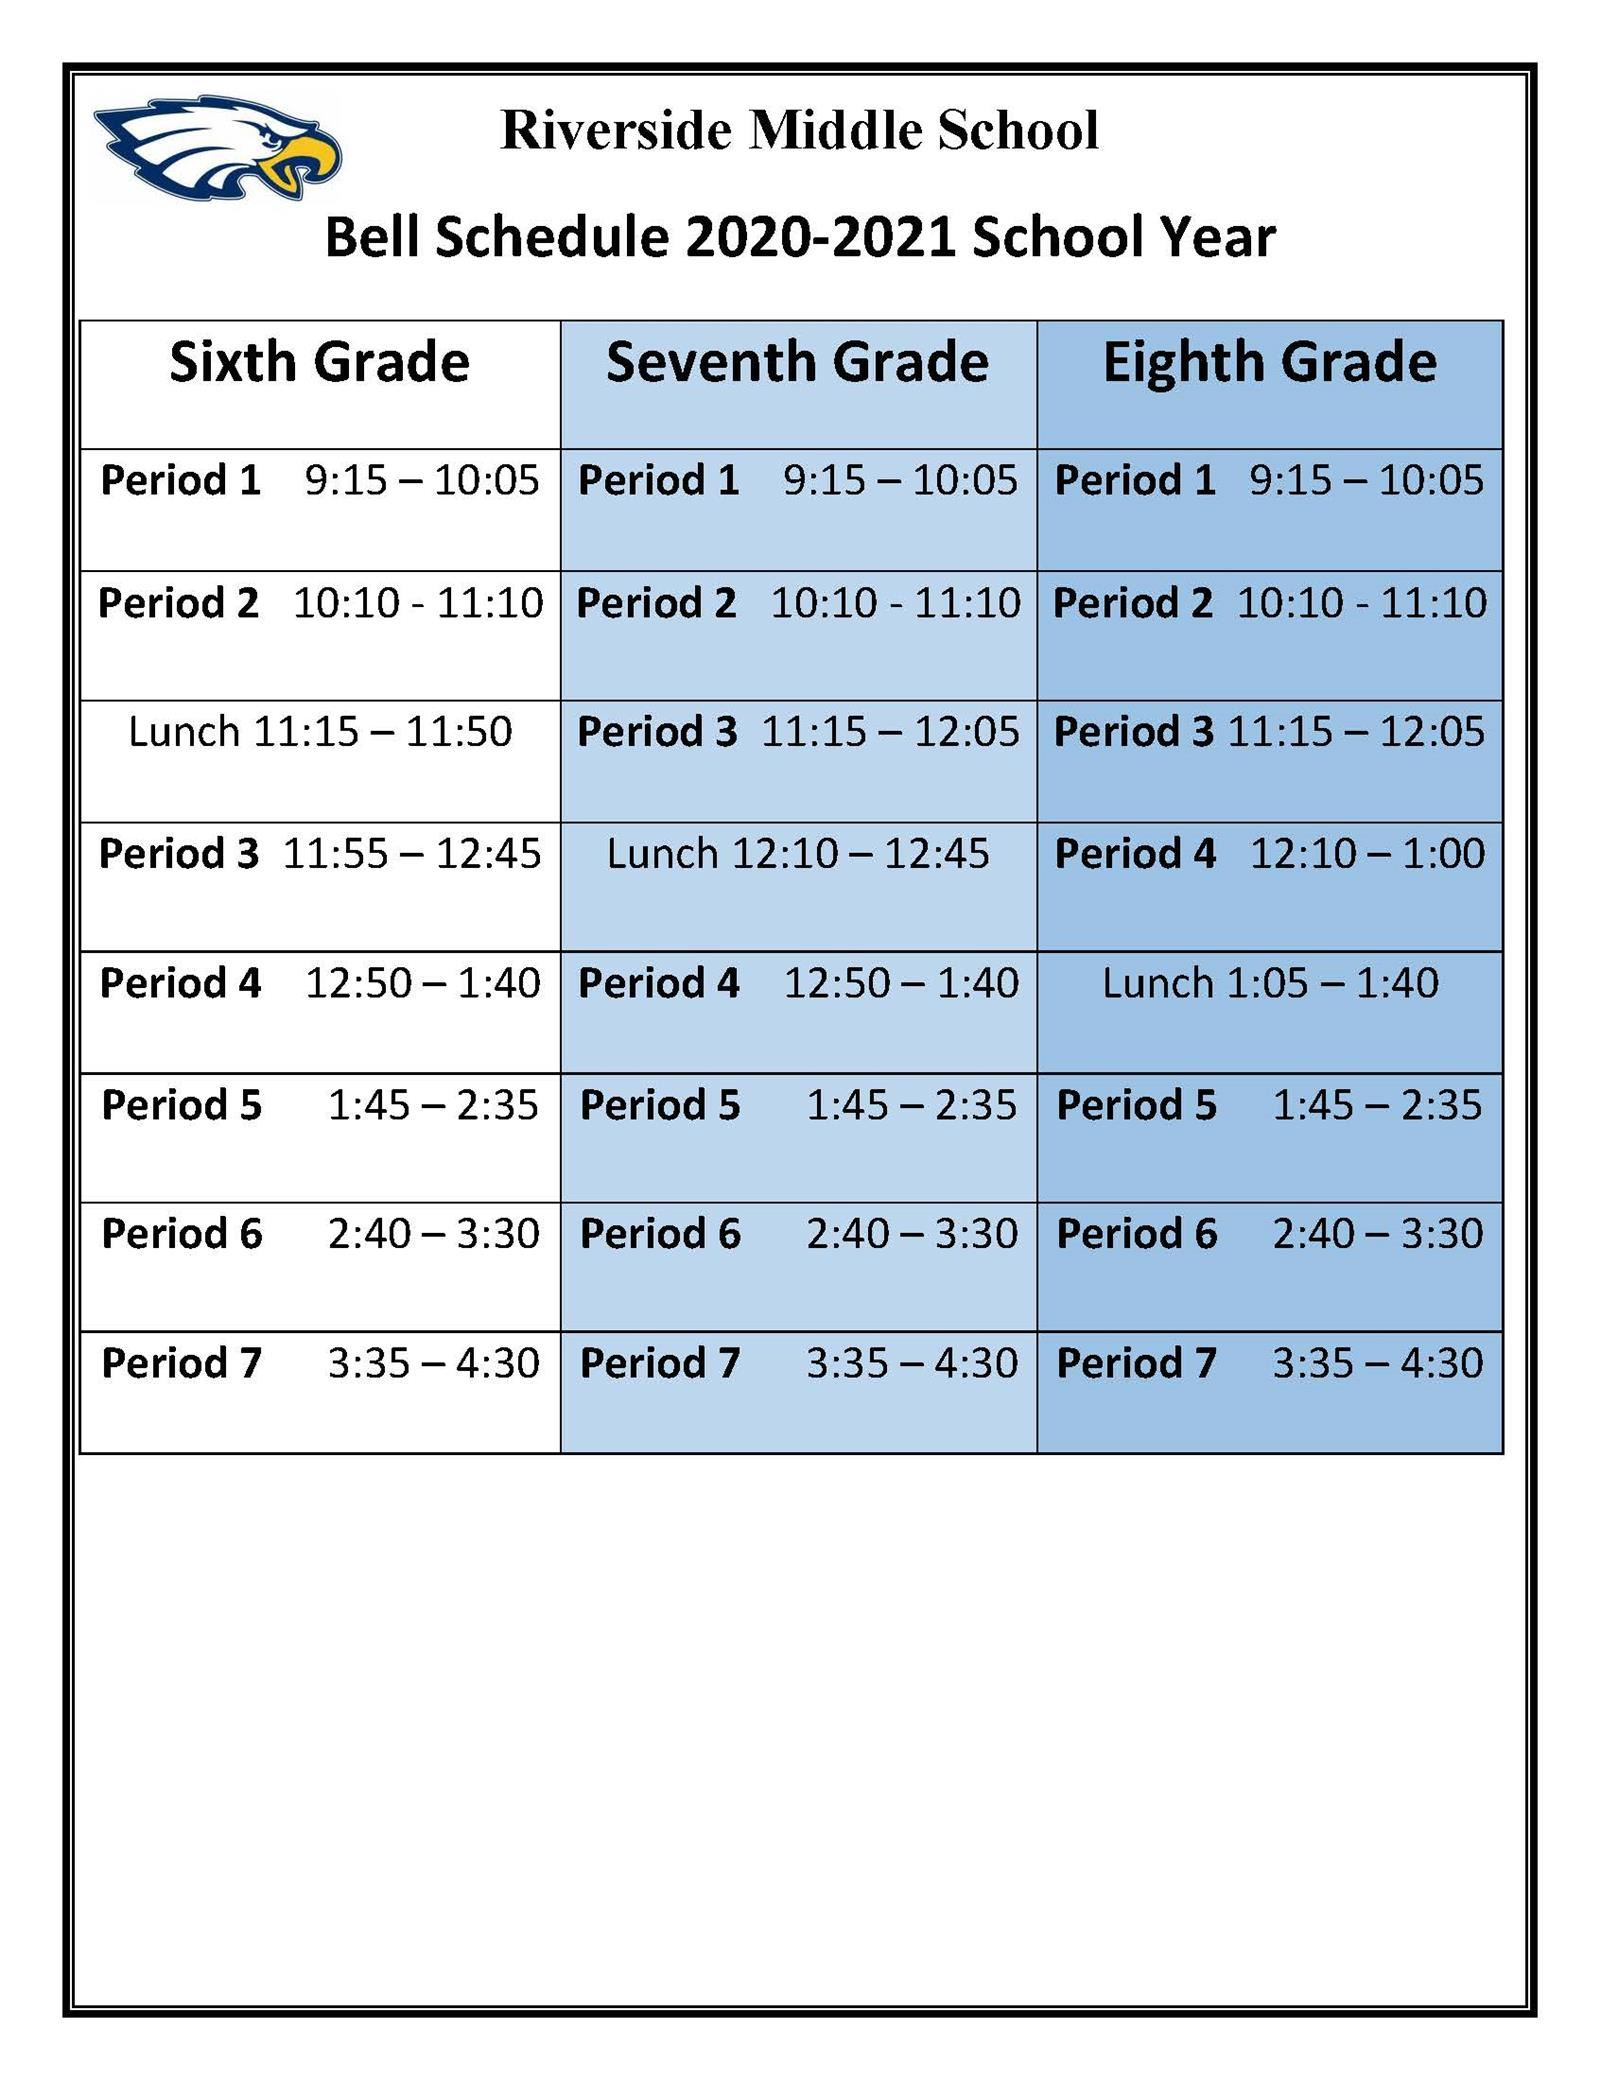 RMS School Schedule